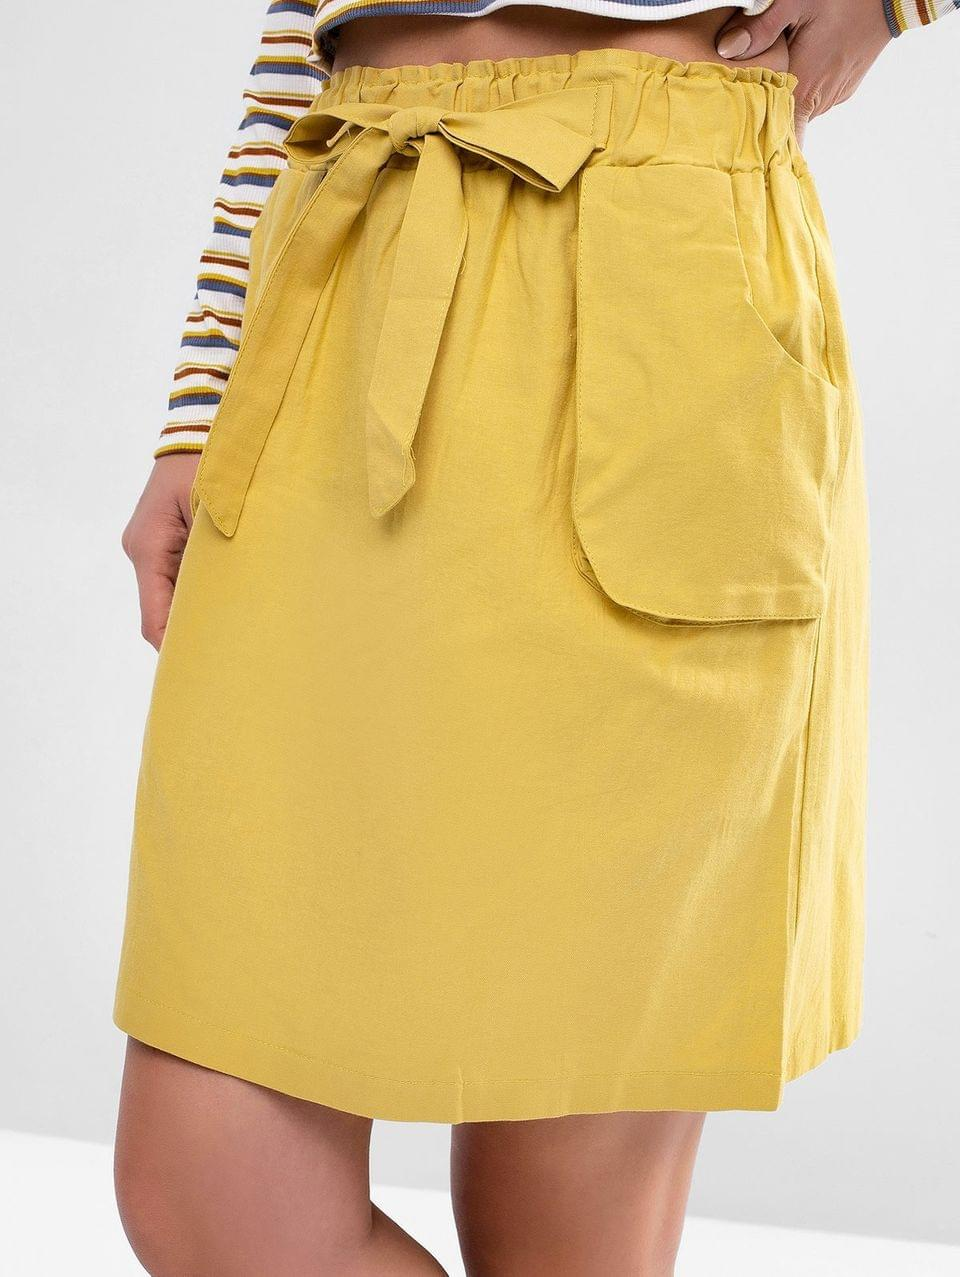 Women's Tied High Waisted Pocket Mini Skirt - Yellow S